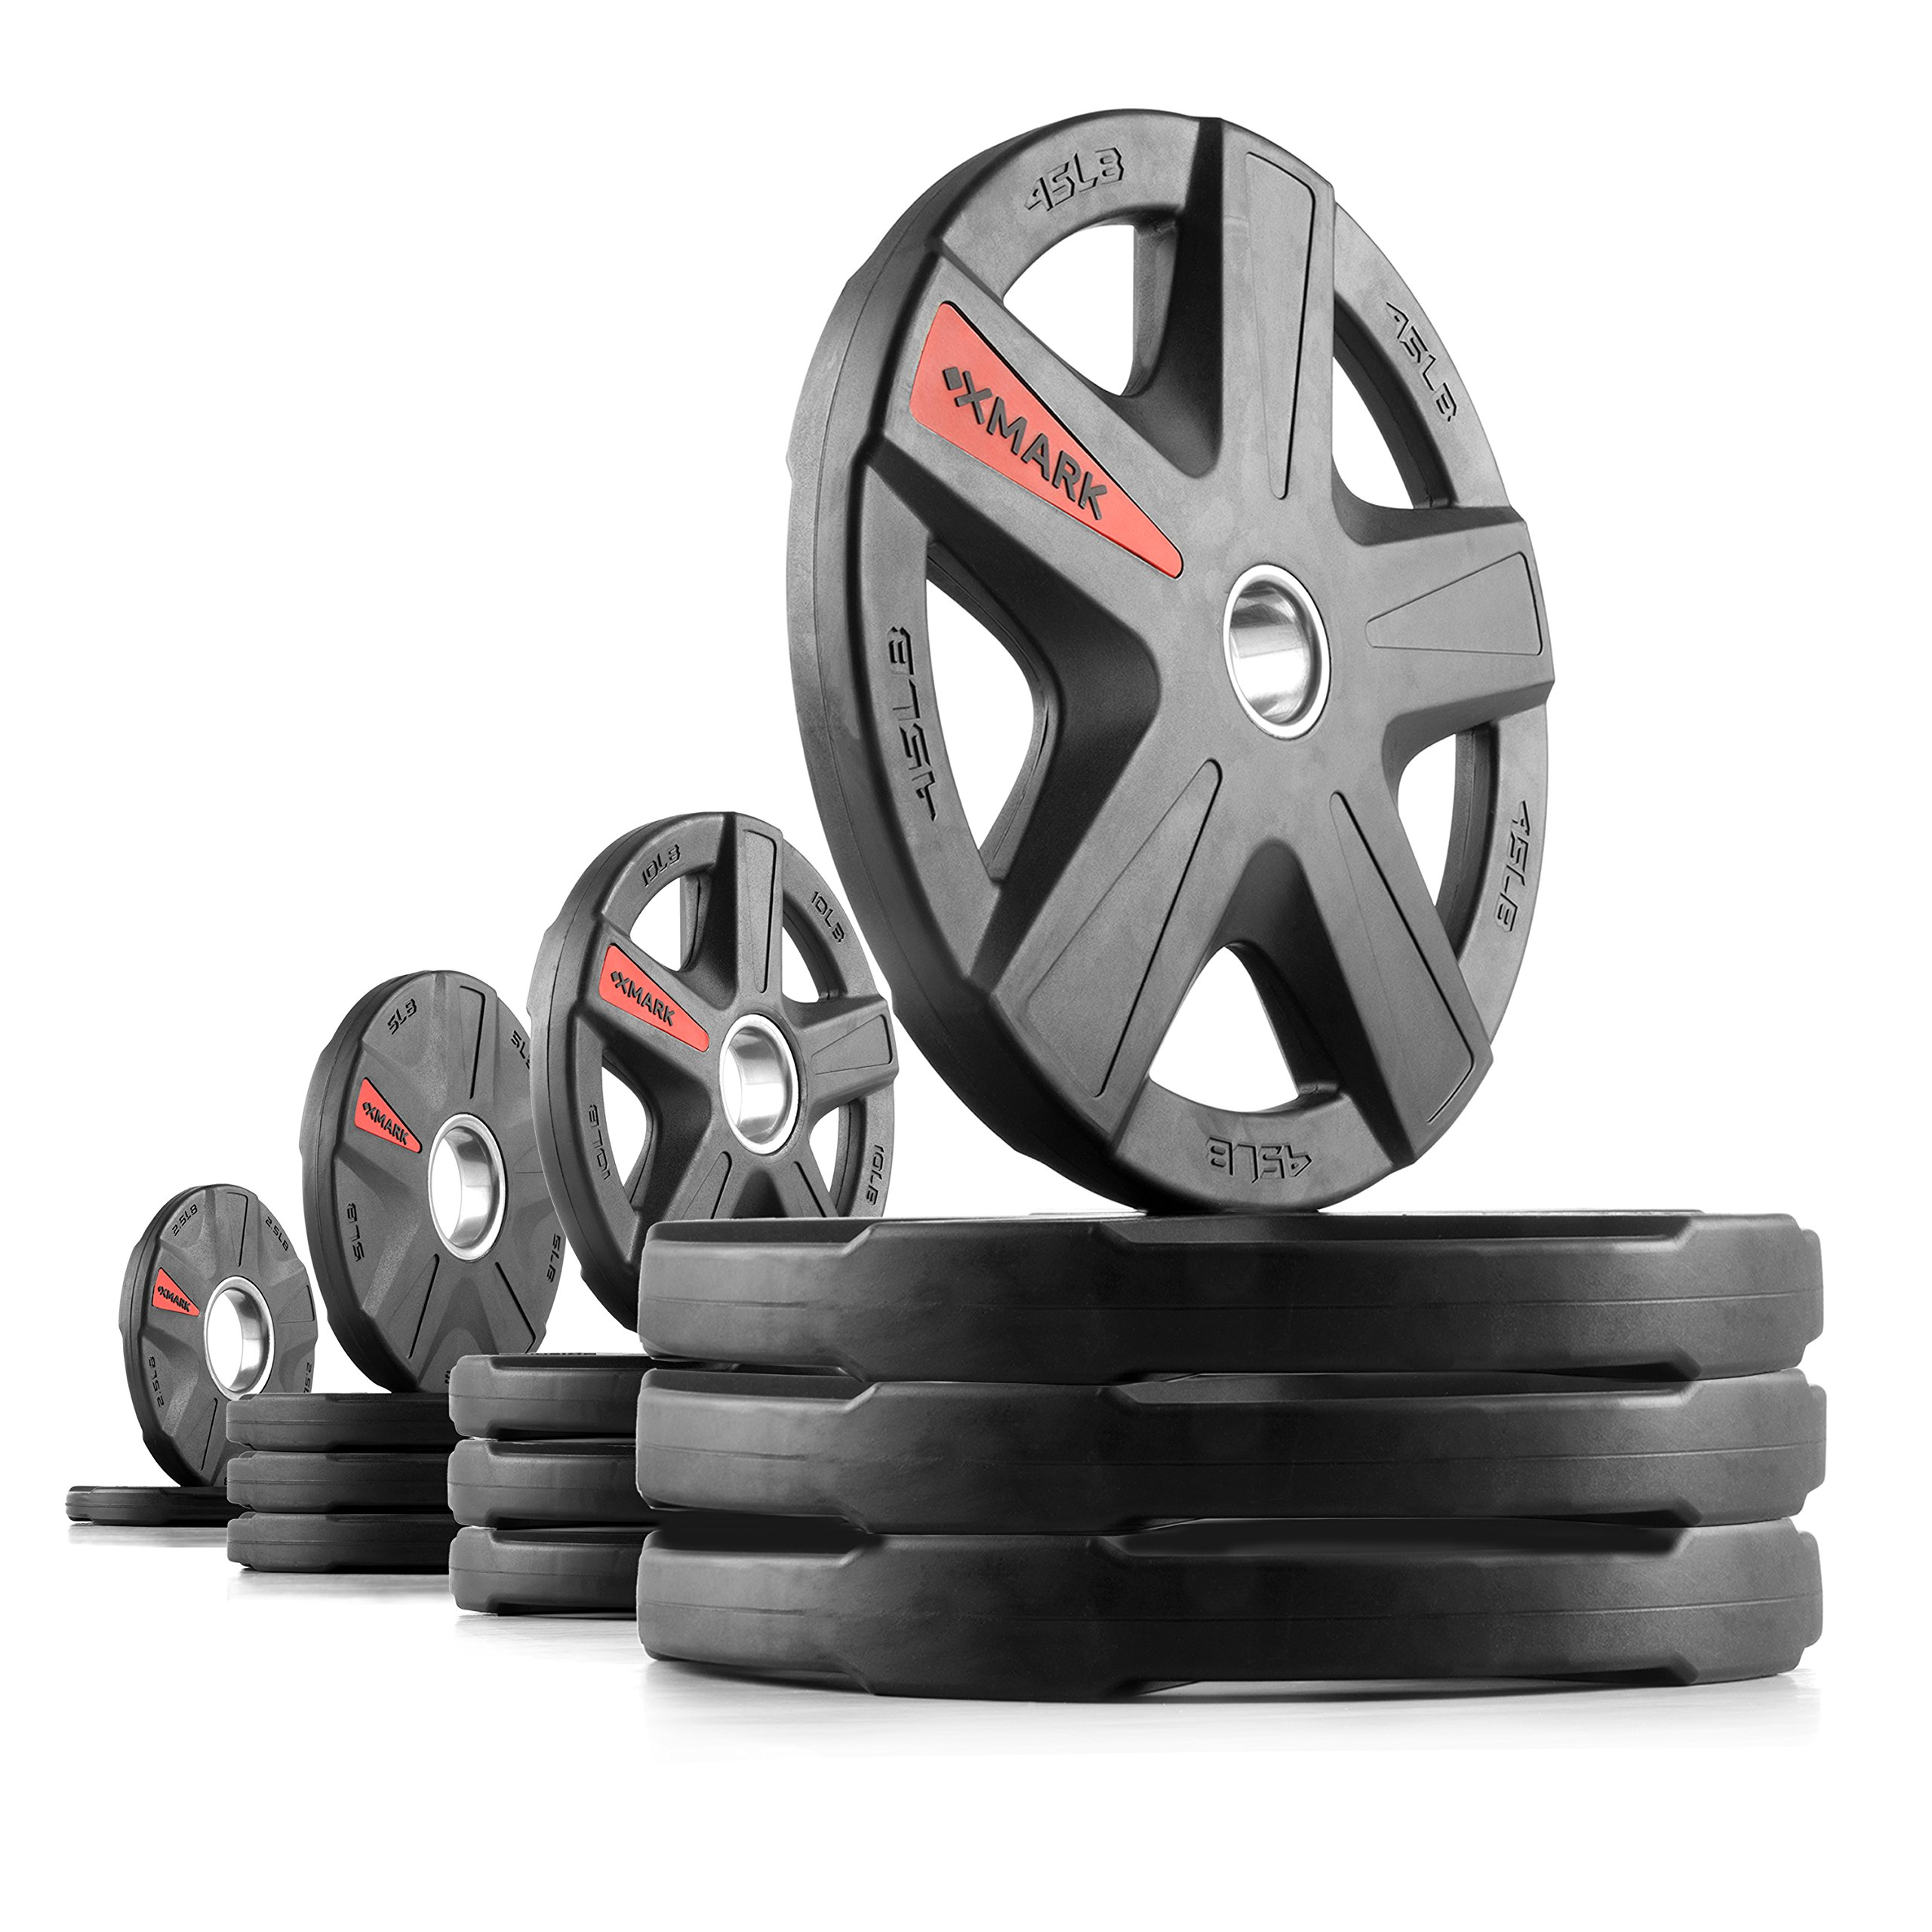 XMark Texas Star 245 lb Set Olympic Plates, Patented Design, One-Year Warranty, Olympic Weight Plates